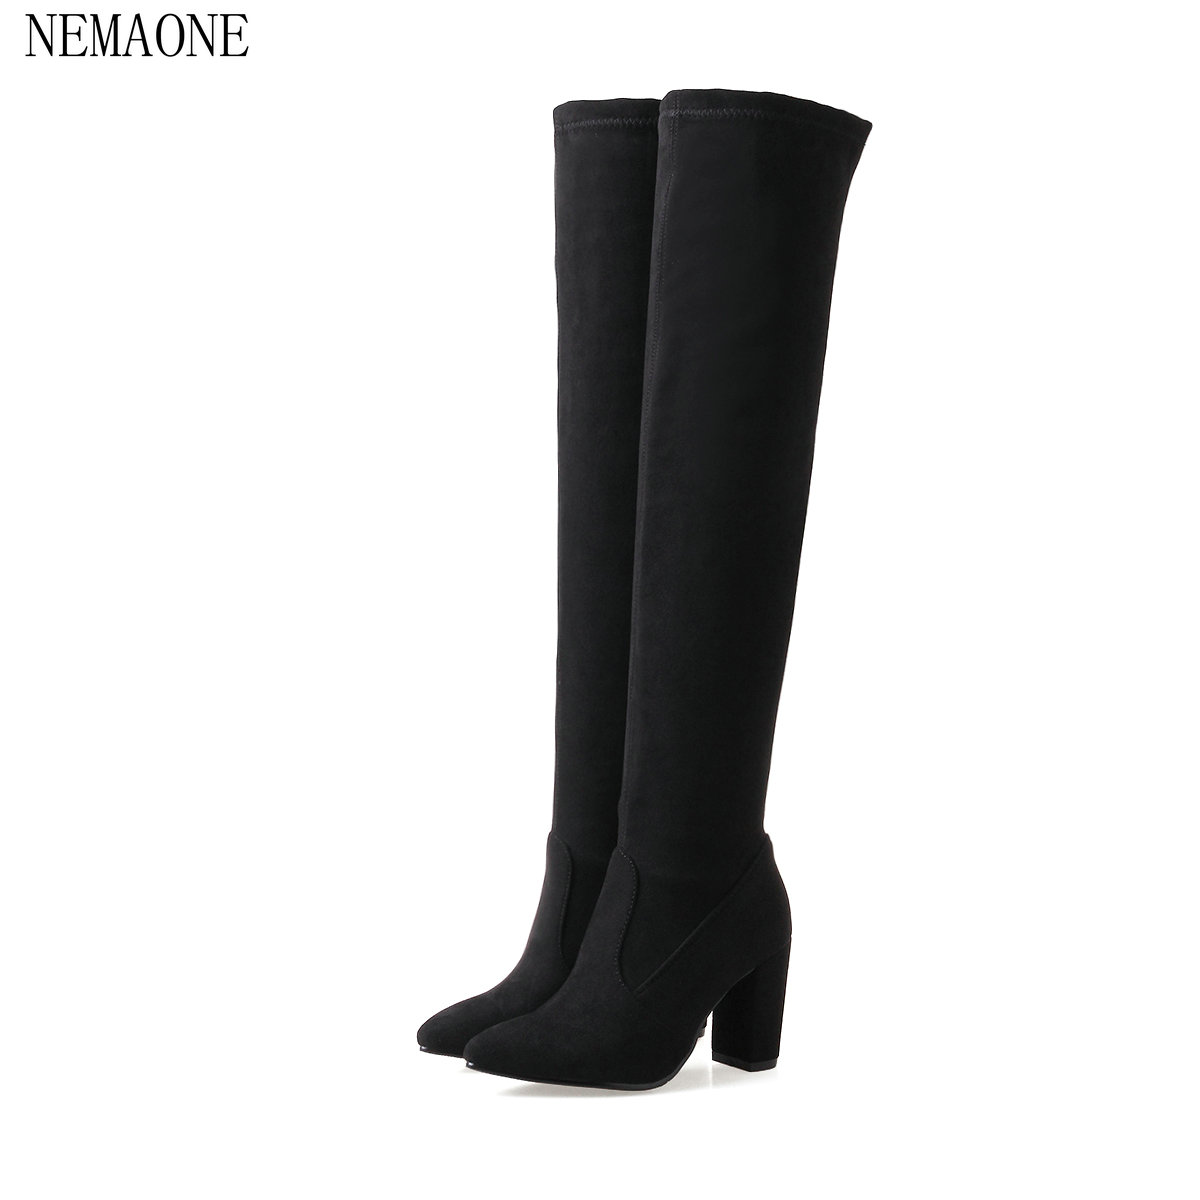 NEMAONE 2018 Women Over The Knee High Boots Solid Fashion Square Heel Round Toe Women All Match Women Motorcyle Boots Size 34-43<br>